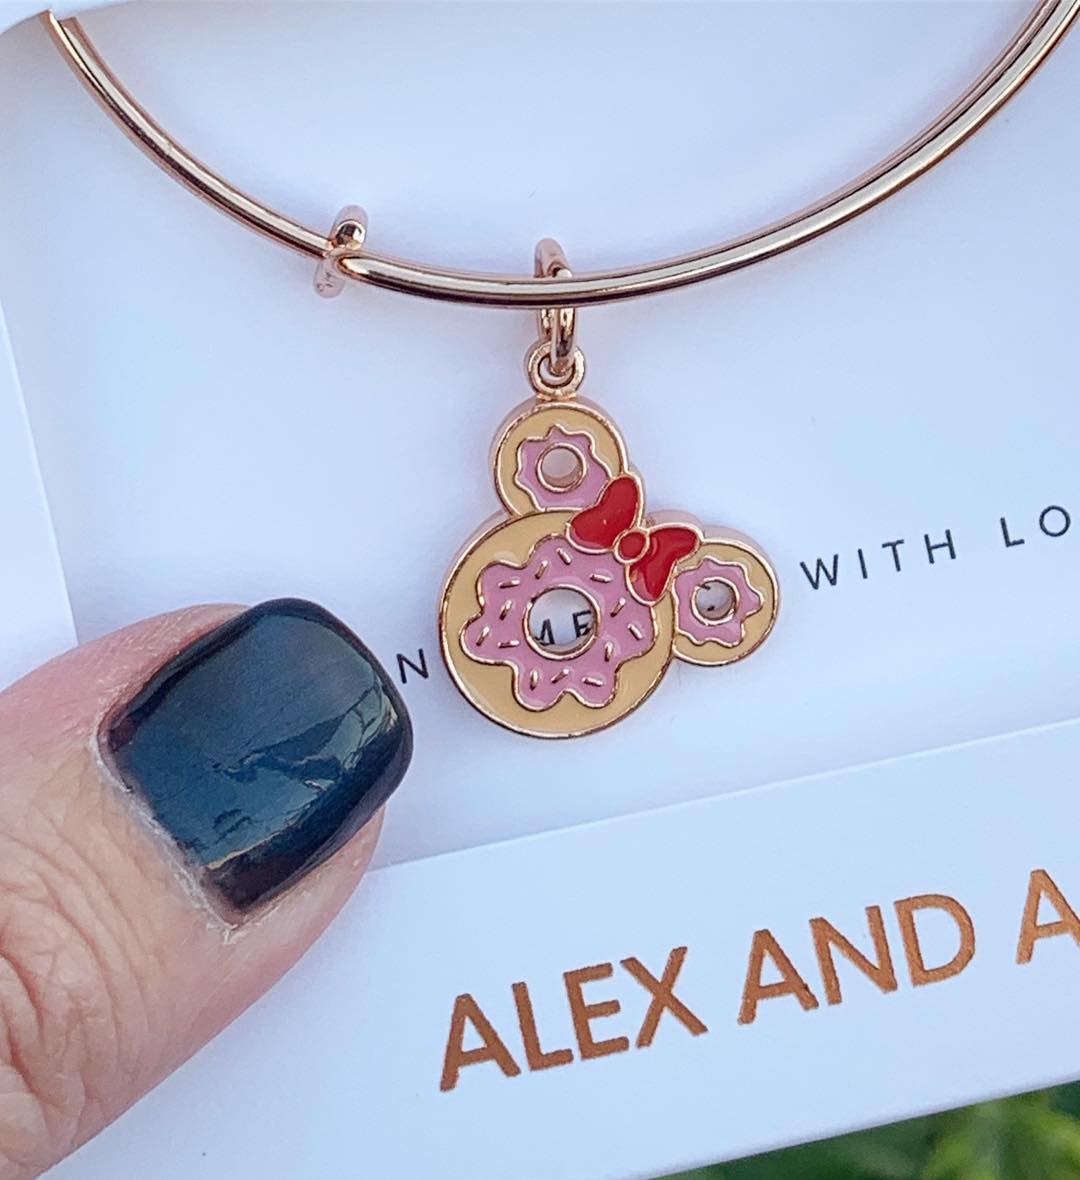 The tastiest D-lish treat Alex and Ani Bracelets have arrived! 4